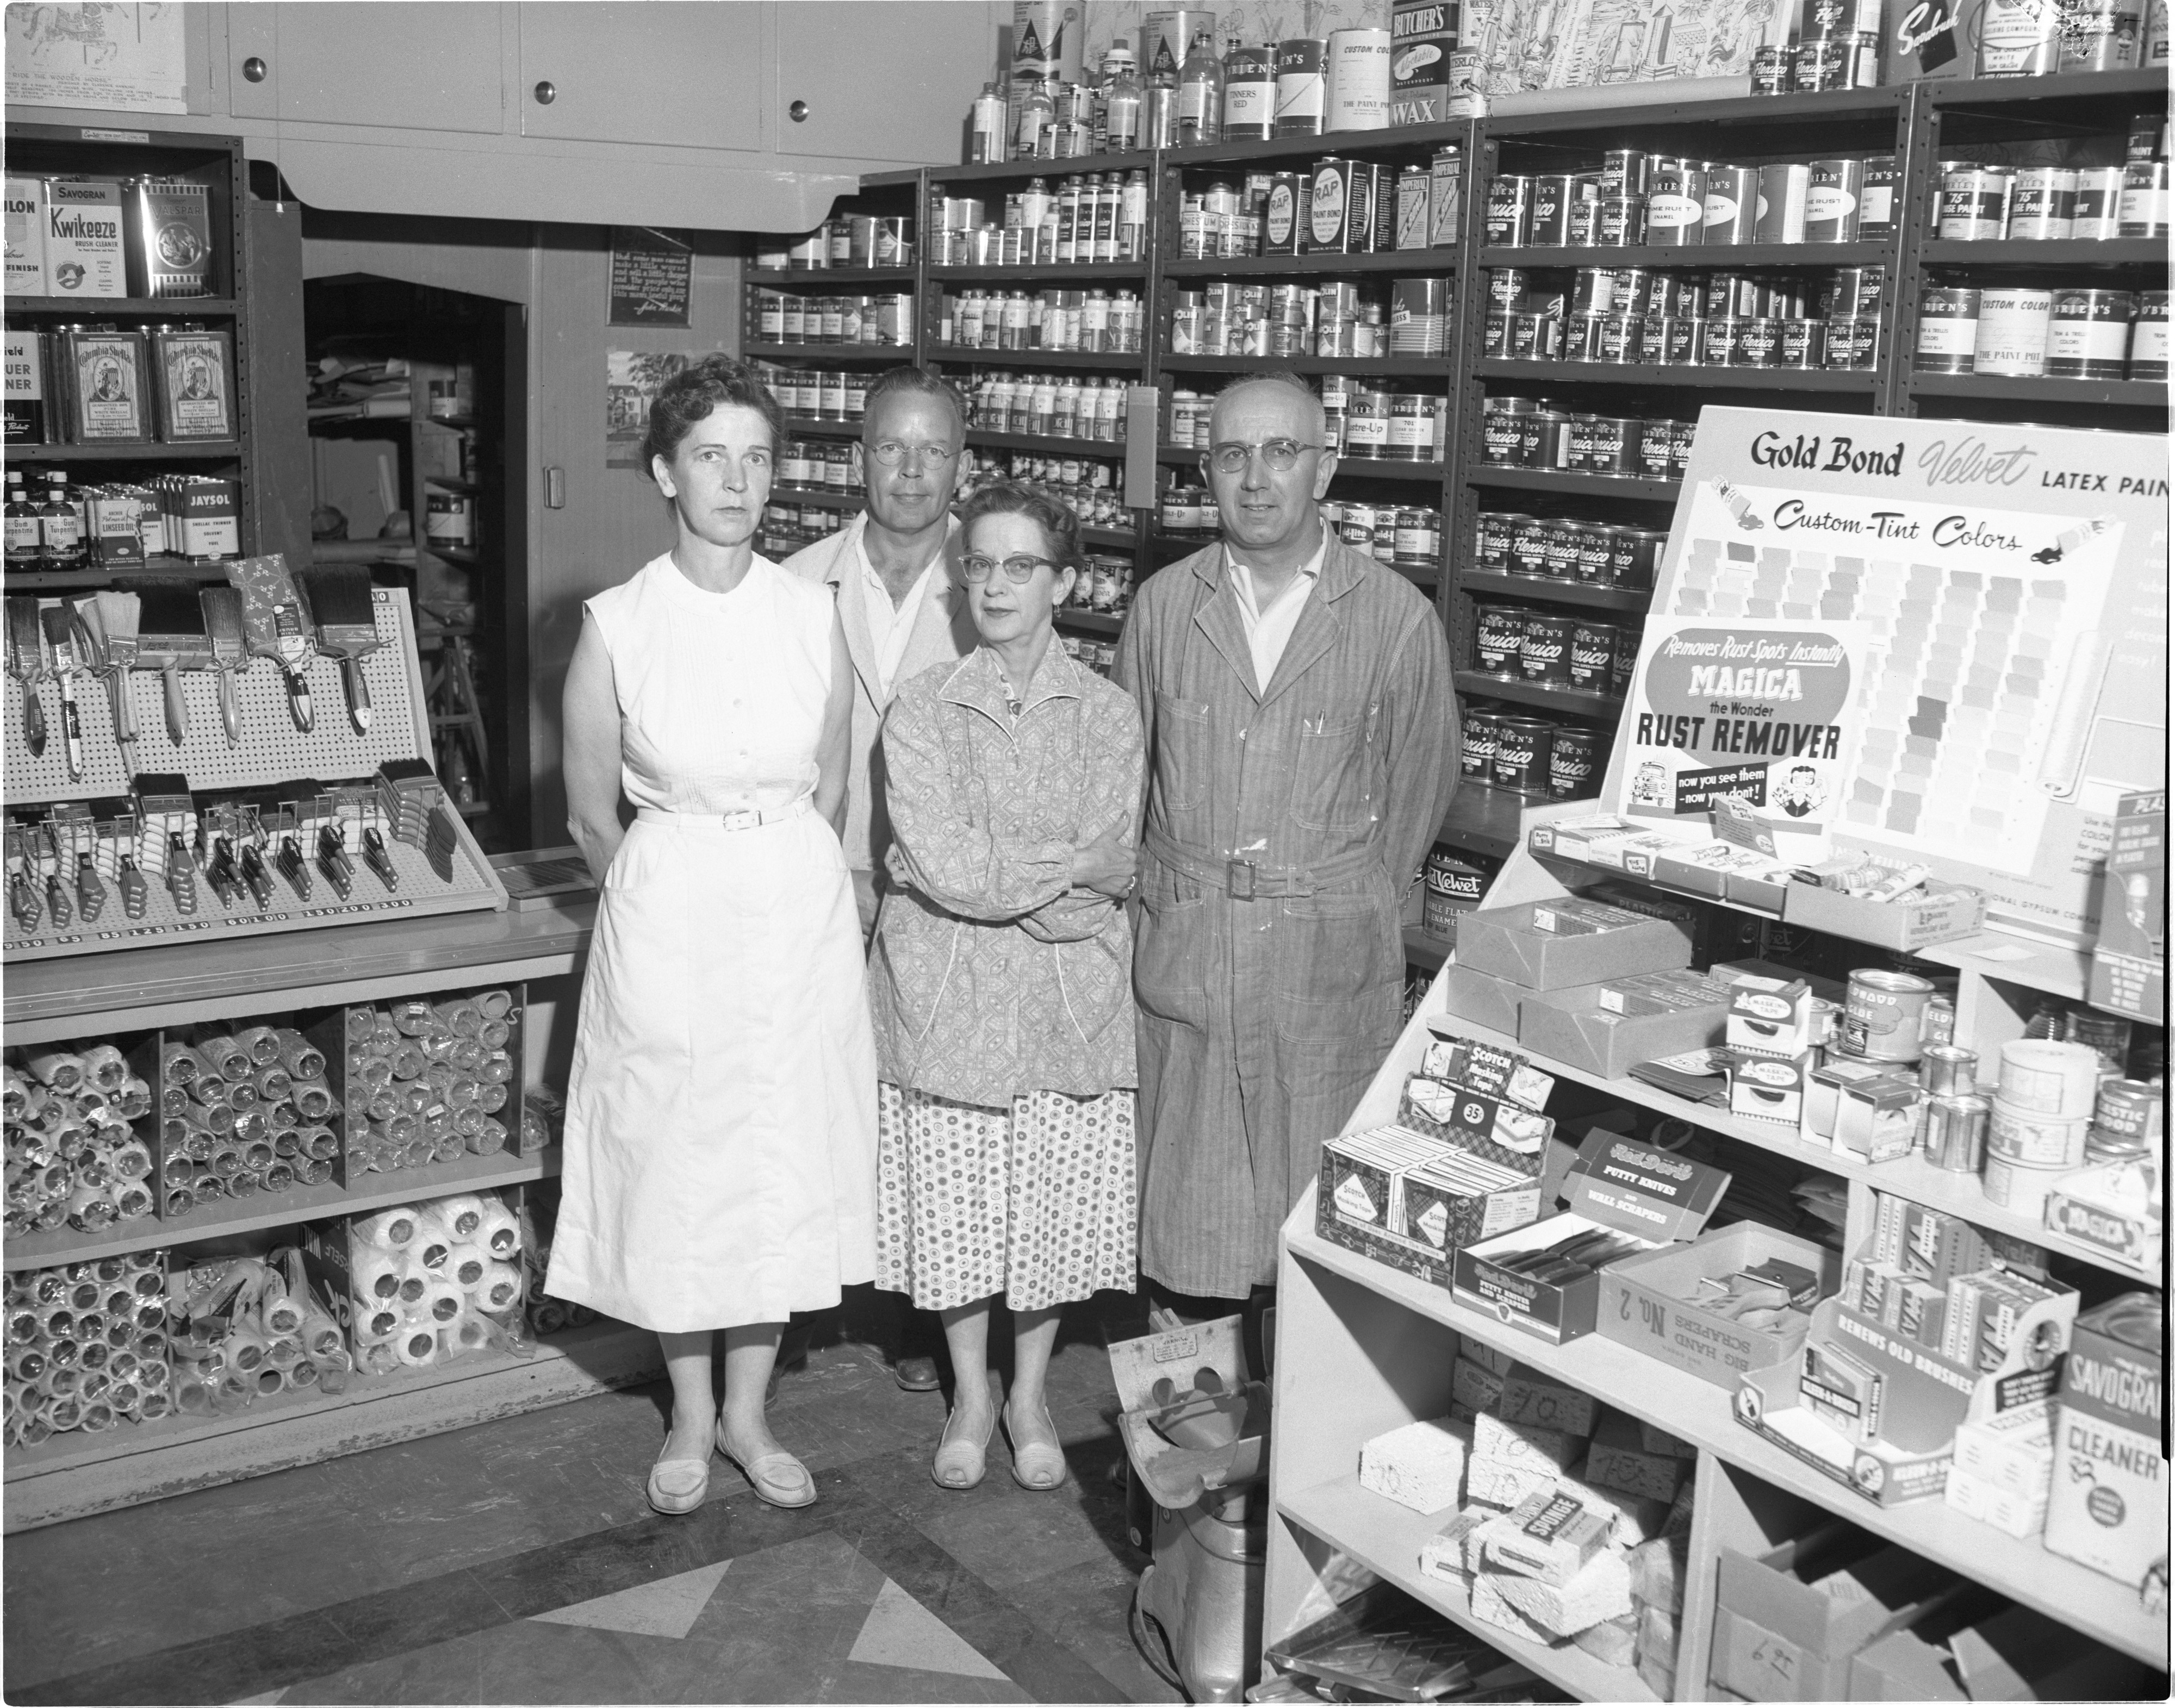 The Paint Pot - Owner E. C. Rowe & Employees, July 1957 image